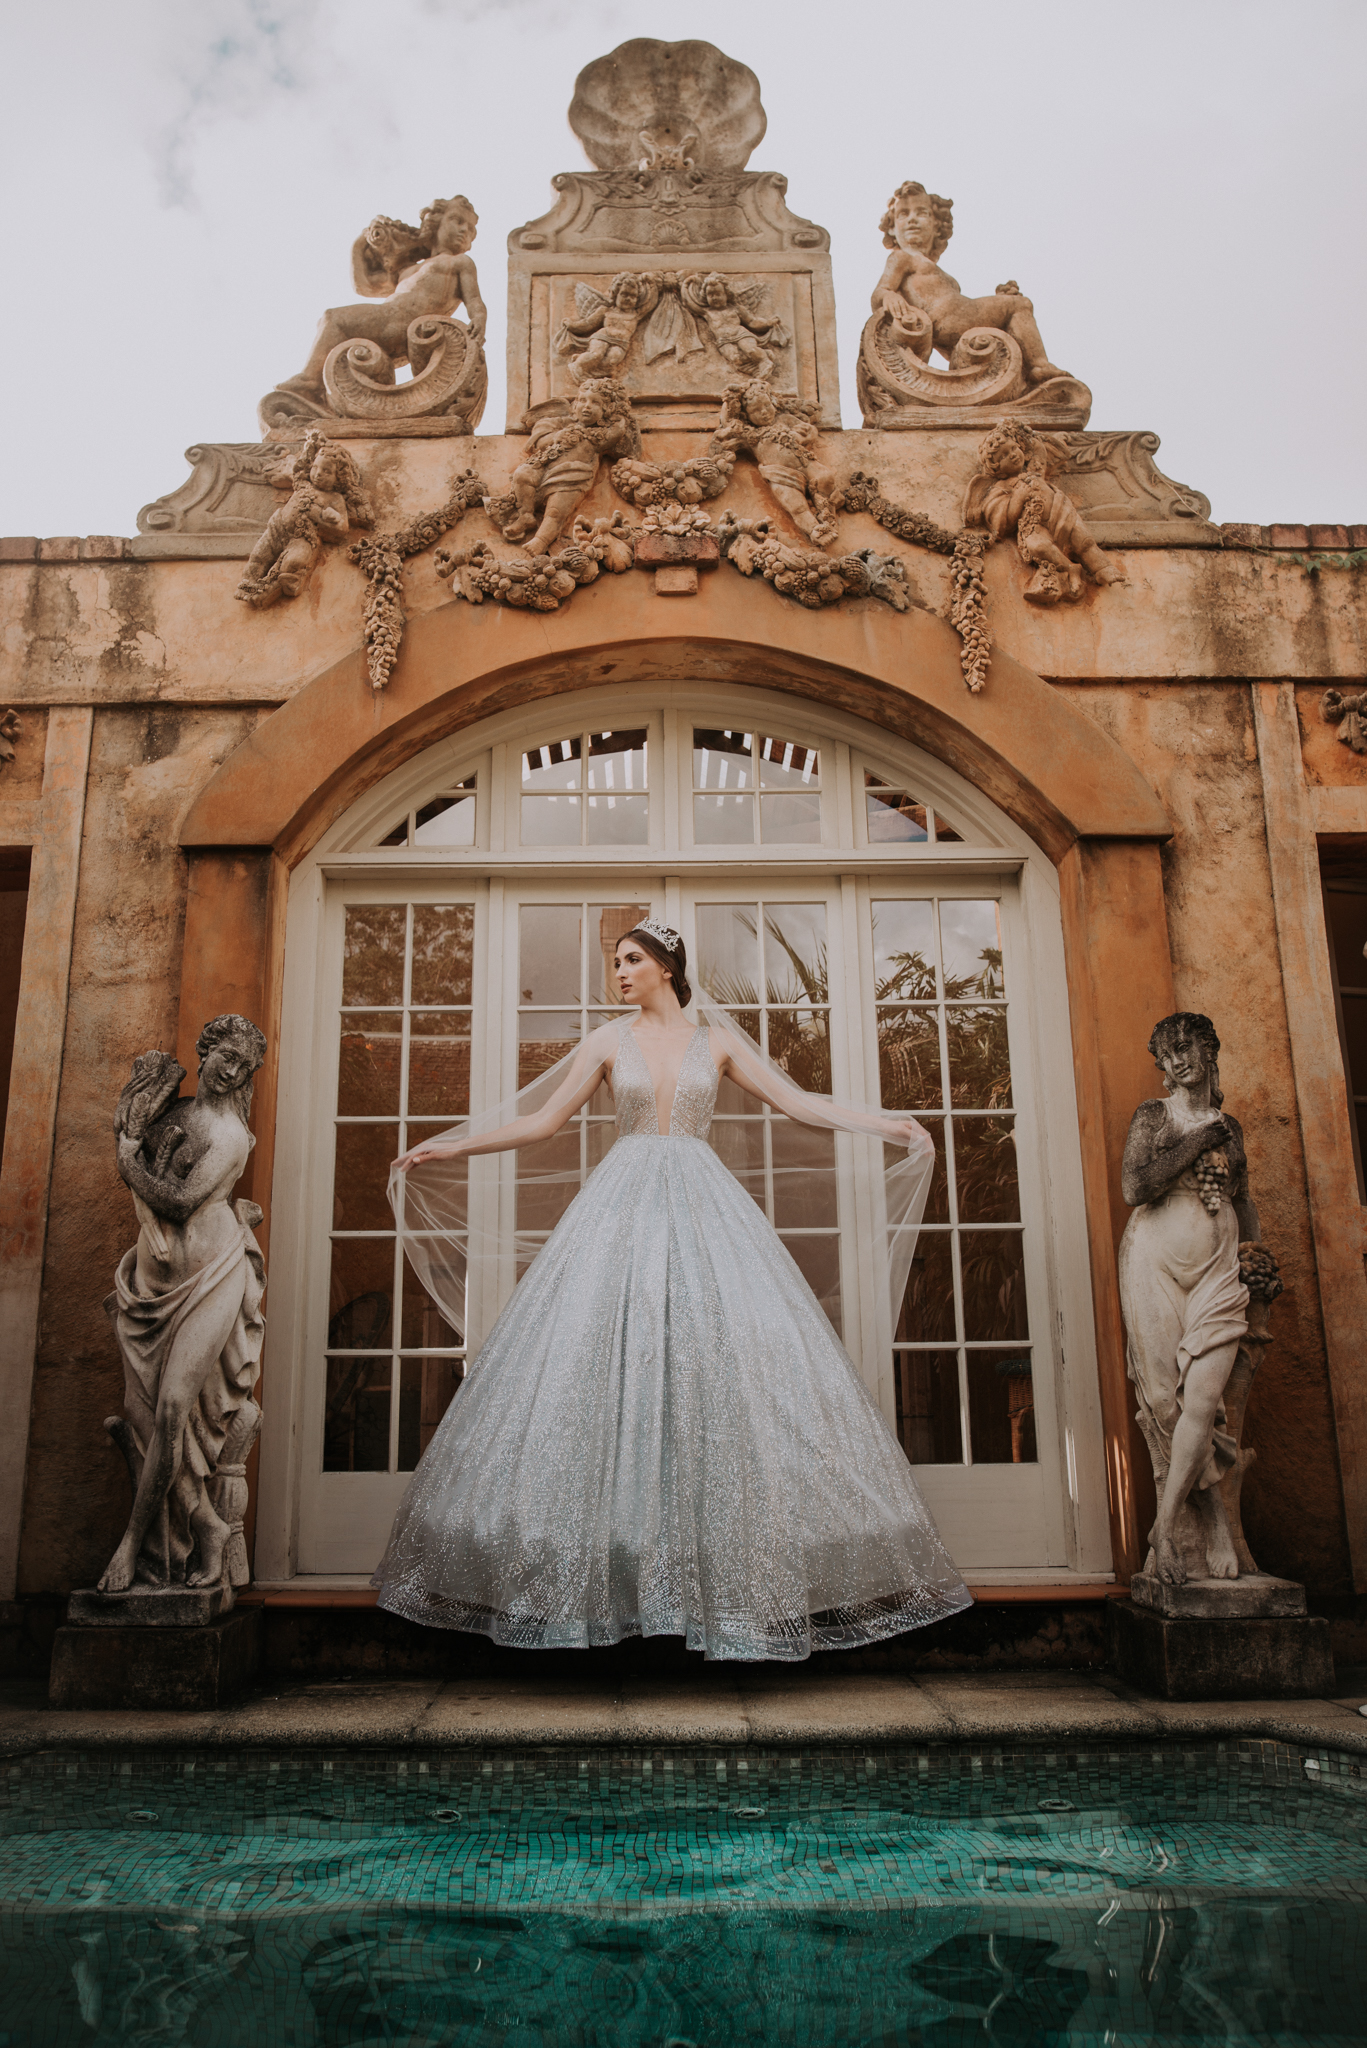 Lovelenscapes Photography X Ulyana Aster Bridal • Les Deux Belettes • Leigh McCoy • Bloodwood Botanica • Alena Iano • Alisa Rudnev • Demi Groot • Jessie Lockley • Maddison Ruby • 29.jpg